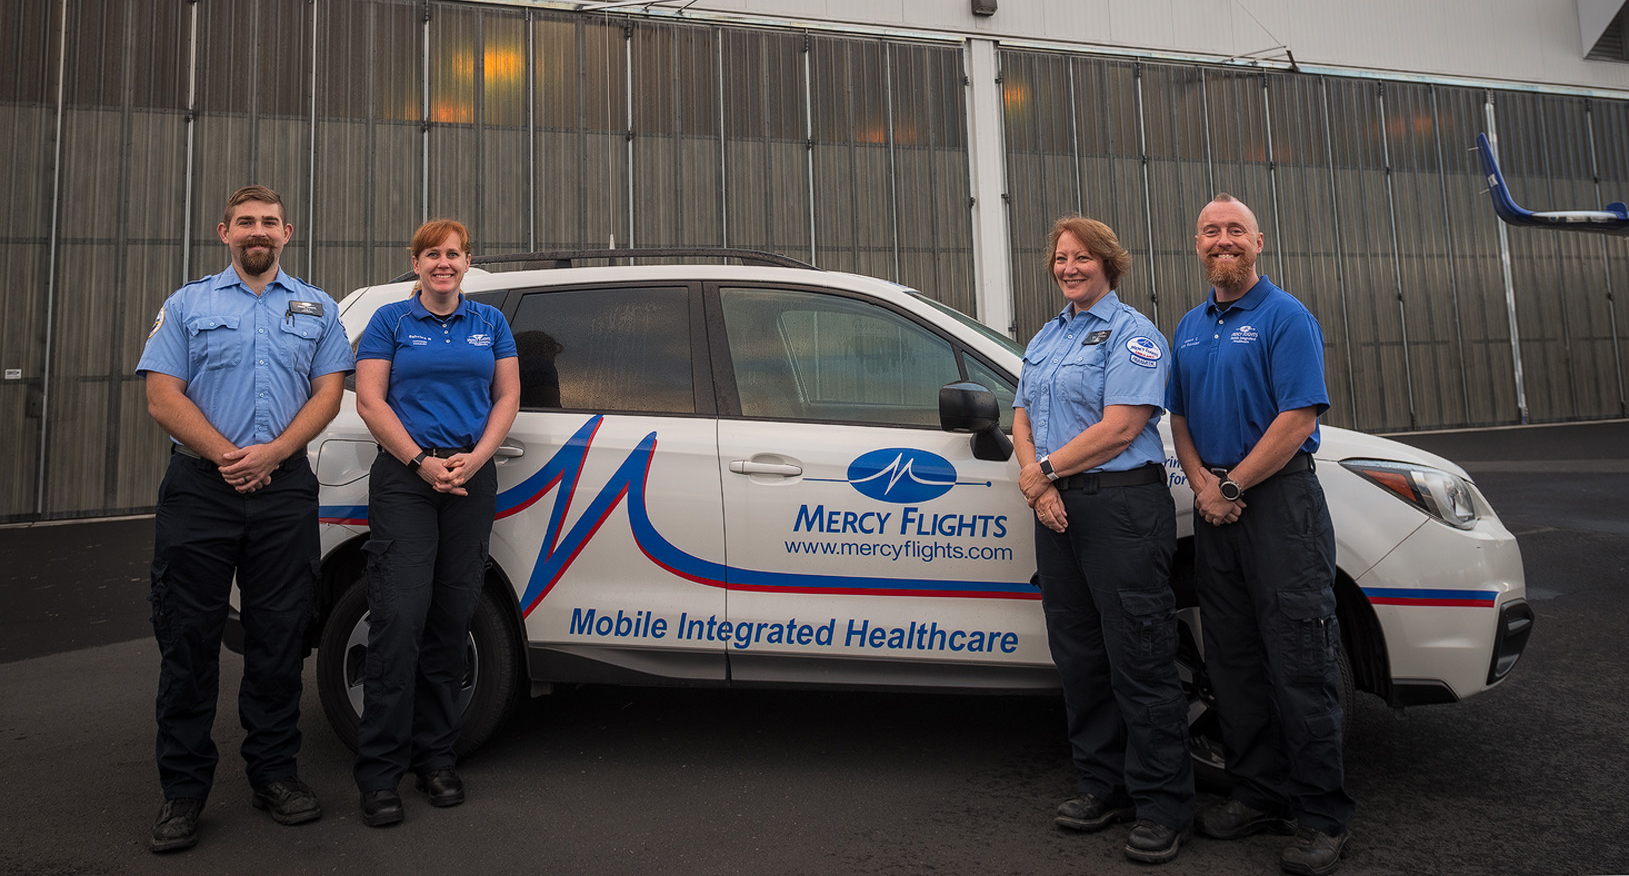 Providence Medford partners with Mercy Flights to improve health in Jackson County